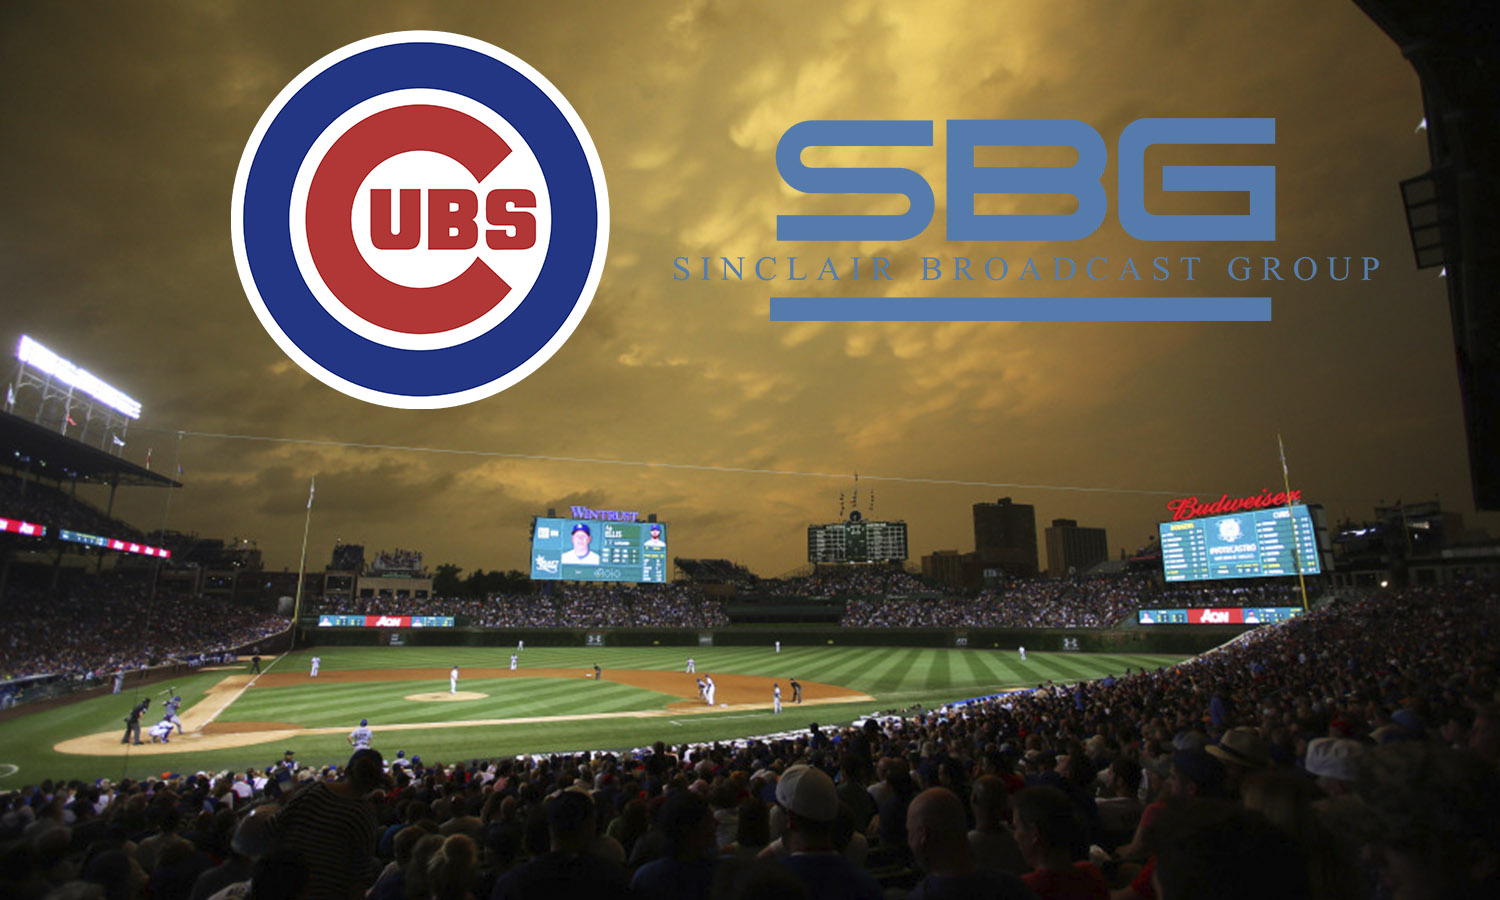 Chicago Cubs, Sinclair Team Up To Launch Marquee Sports